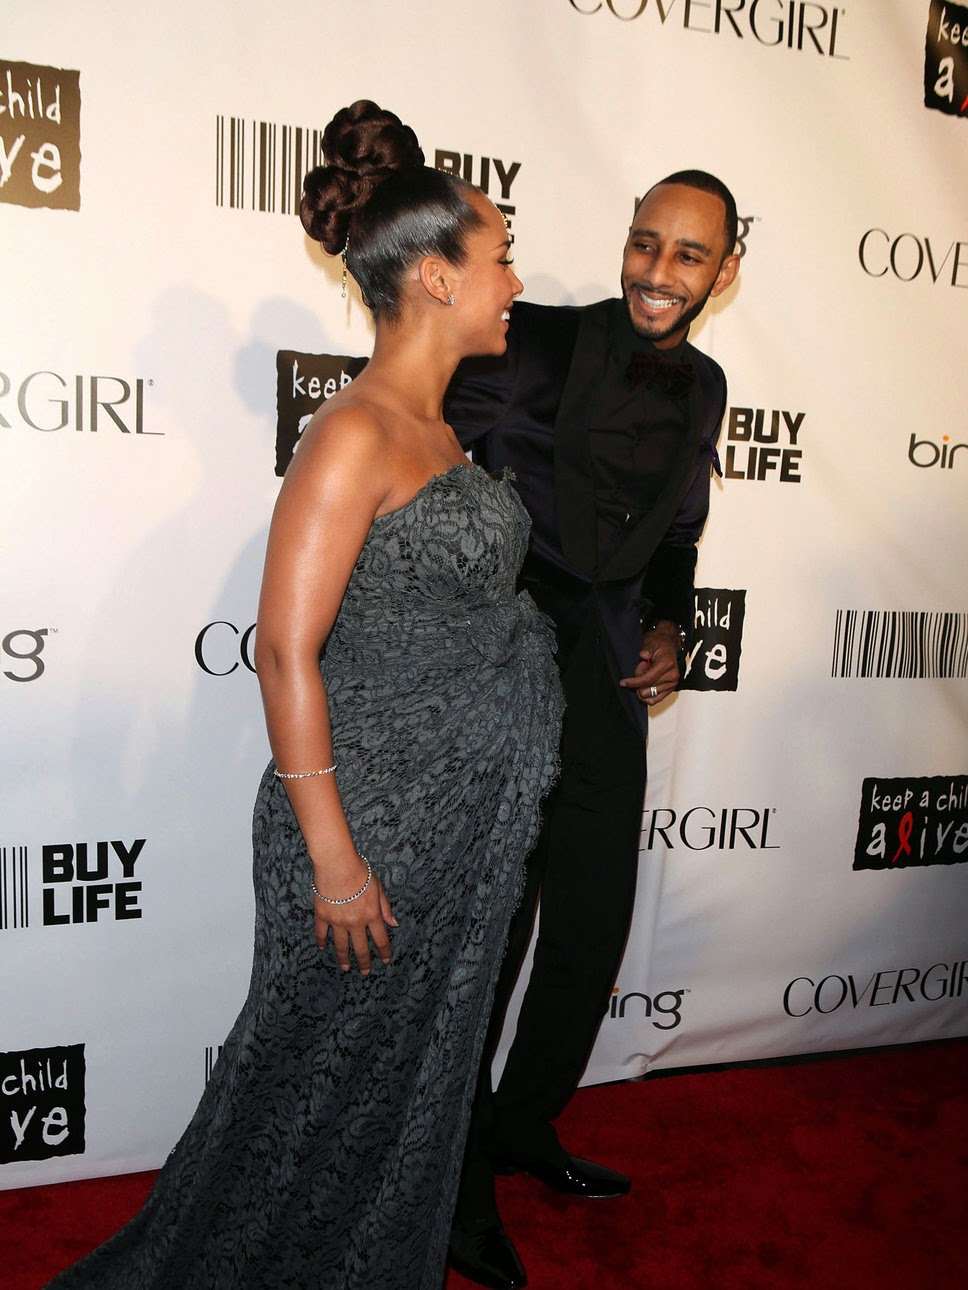 Alicia Keys is pregnant and preparing for the wedding 05/29/2010 5